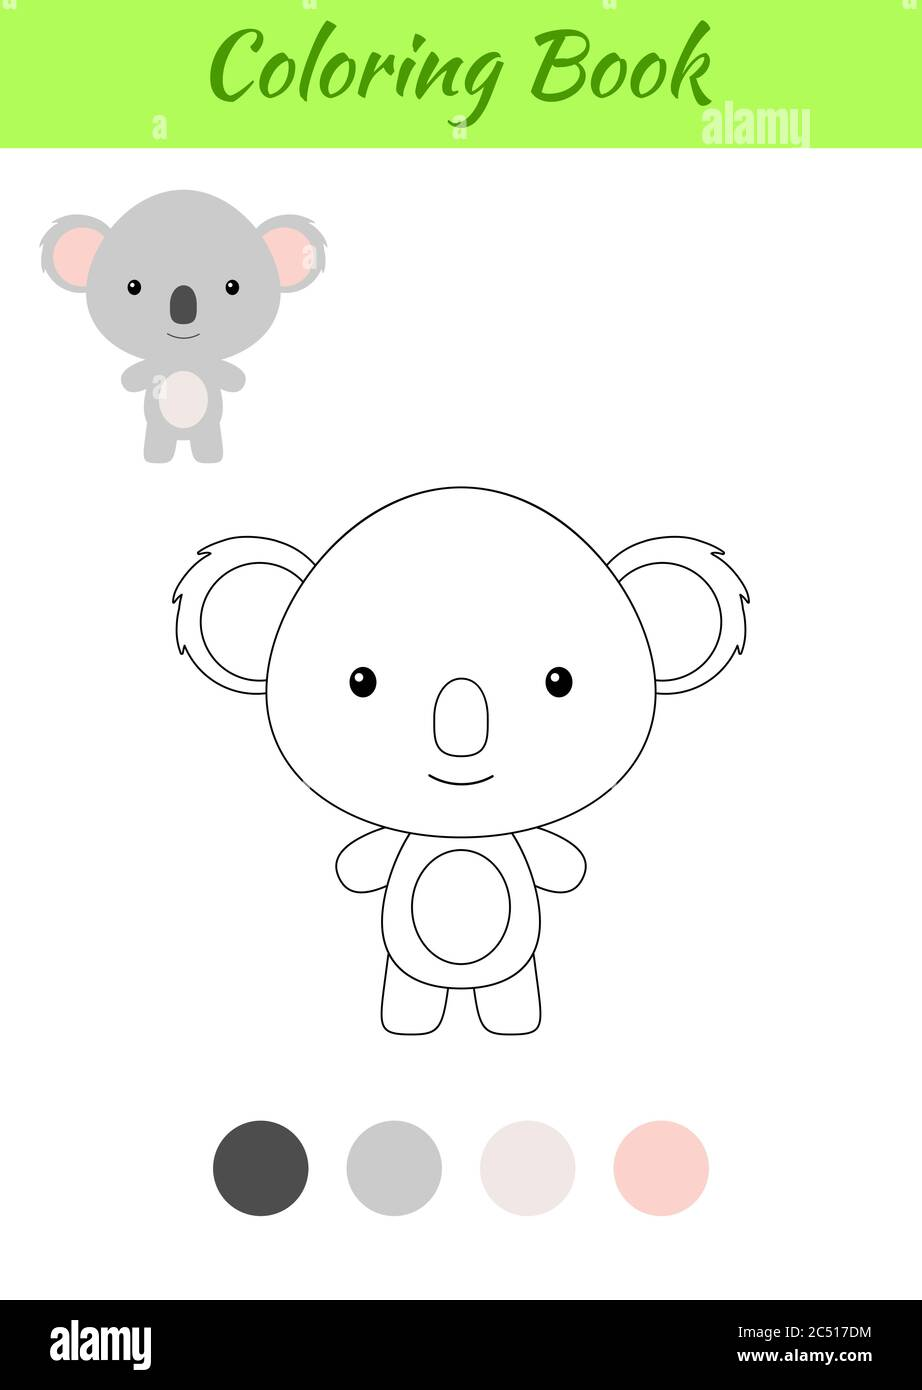 Coloring Page Happy Little Baby Koala Coloring Book For Kids Educational Activity For Preschool Years Kids And Toddlers With Cute Animal Stock Vector Image Art Alamy